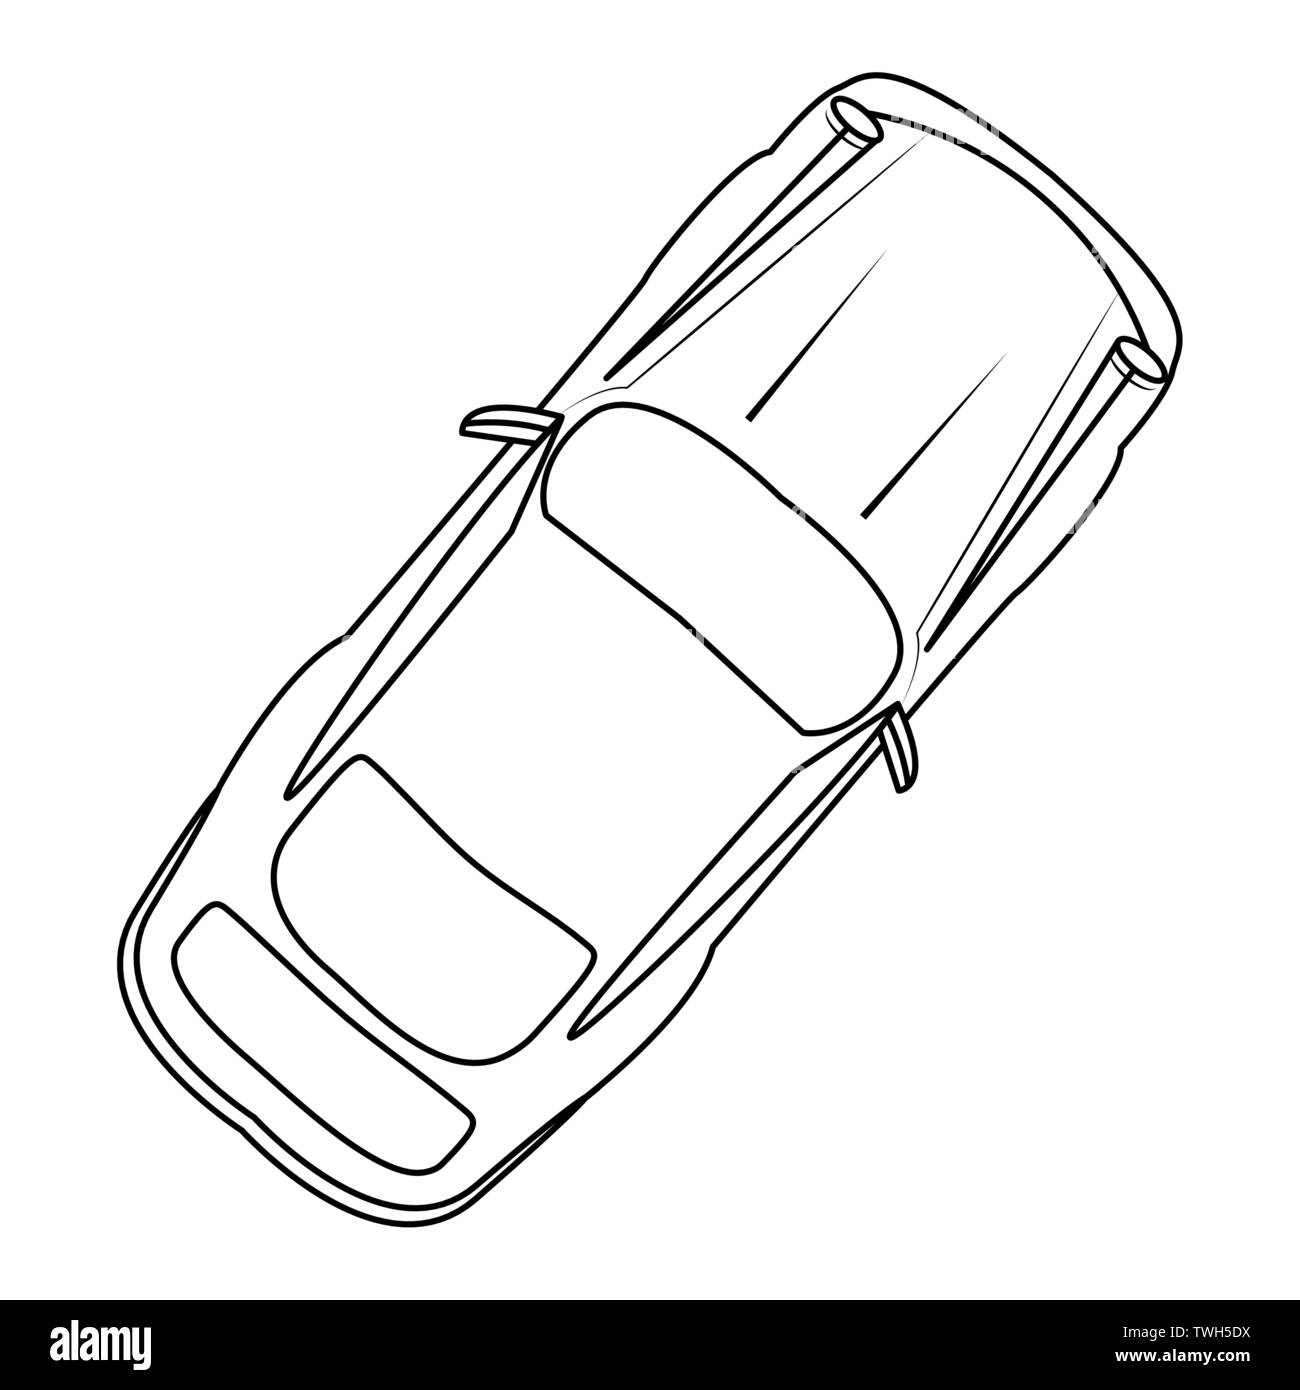 car vehicle top view white background vector illustration - Stock Image